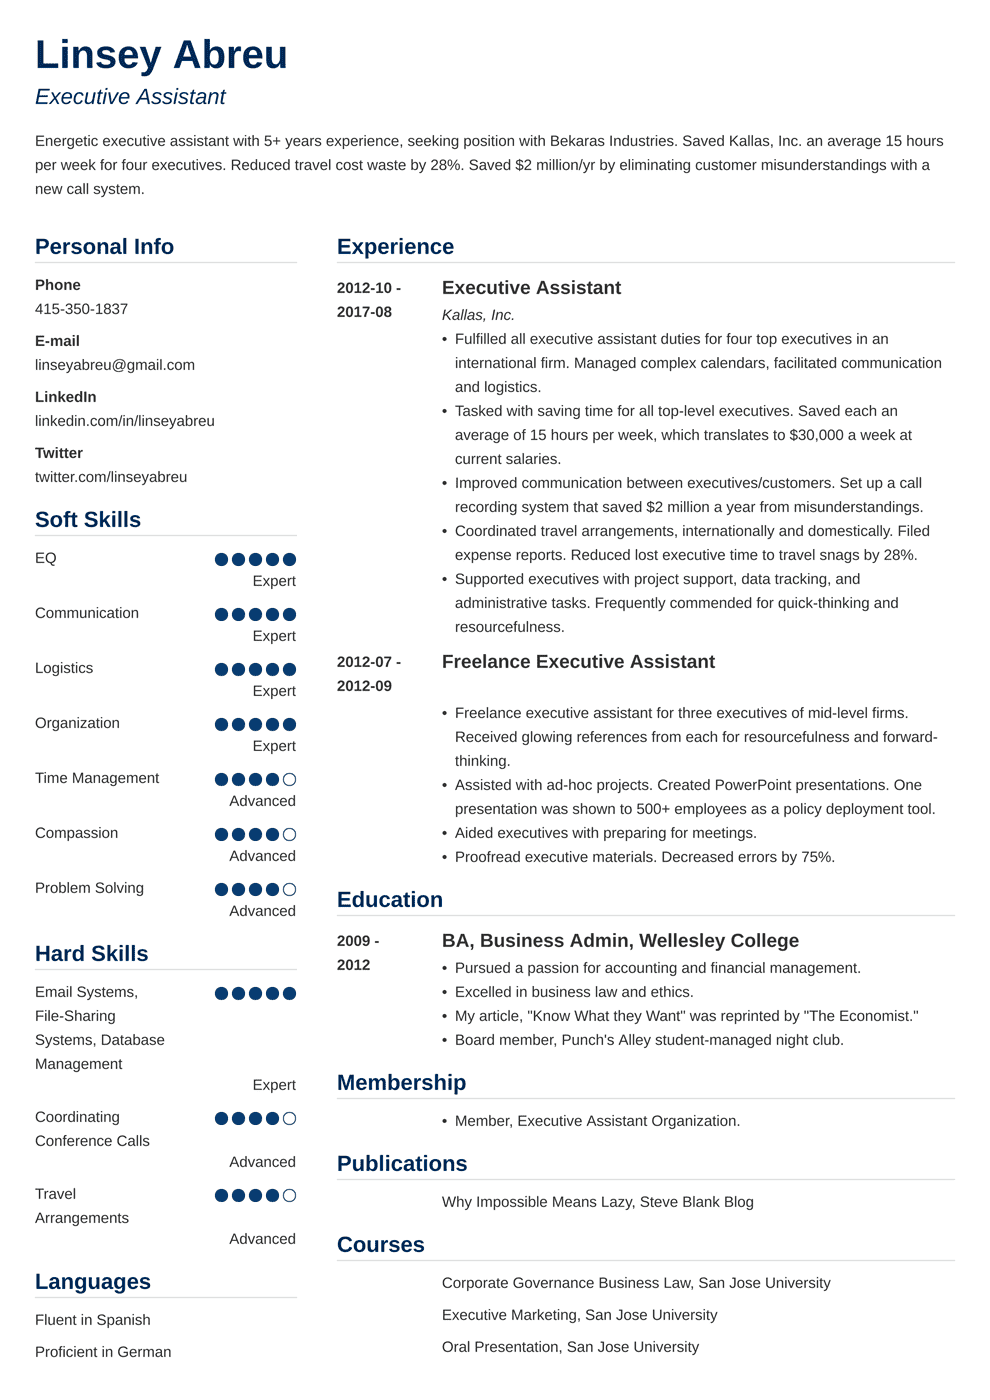 sample resume for executive assistant to senior executive.html